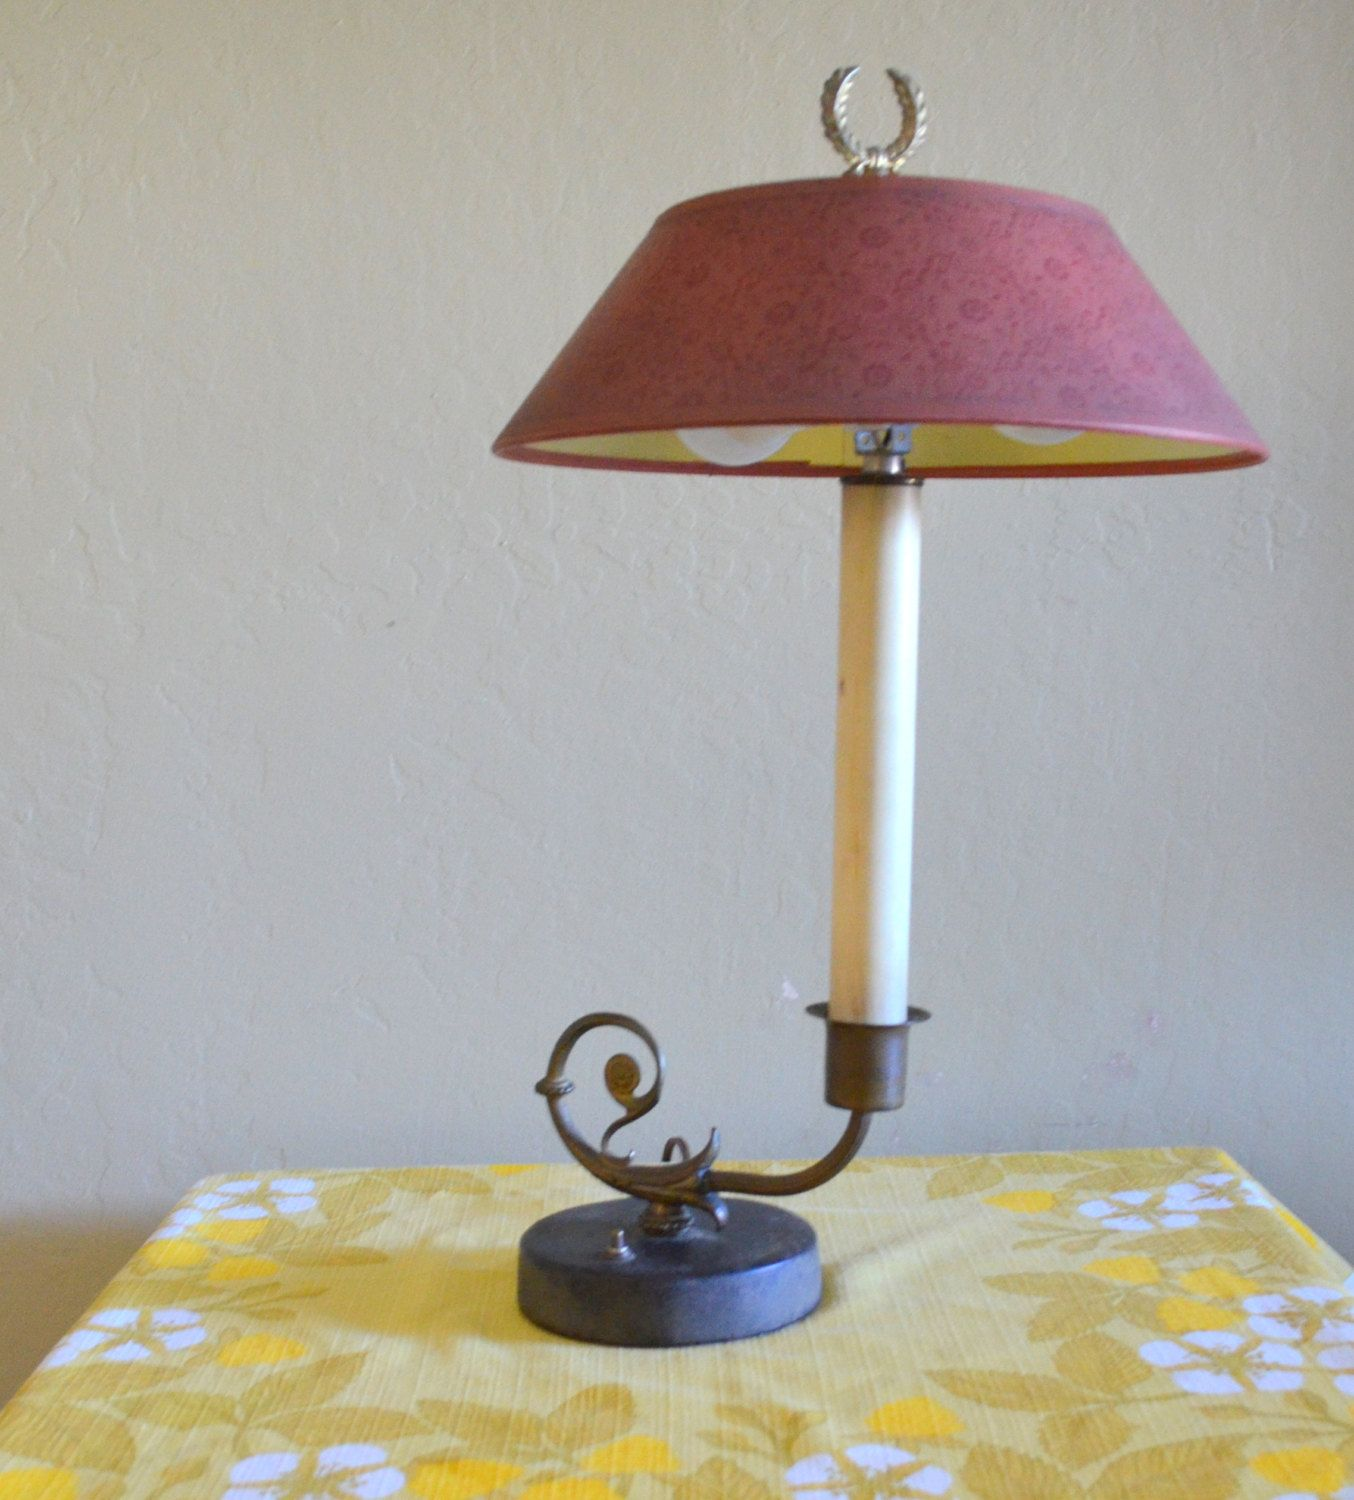 Vintage Candlestick Table Lamp With Laurel Wreath Finial Leather